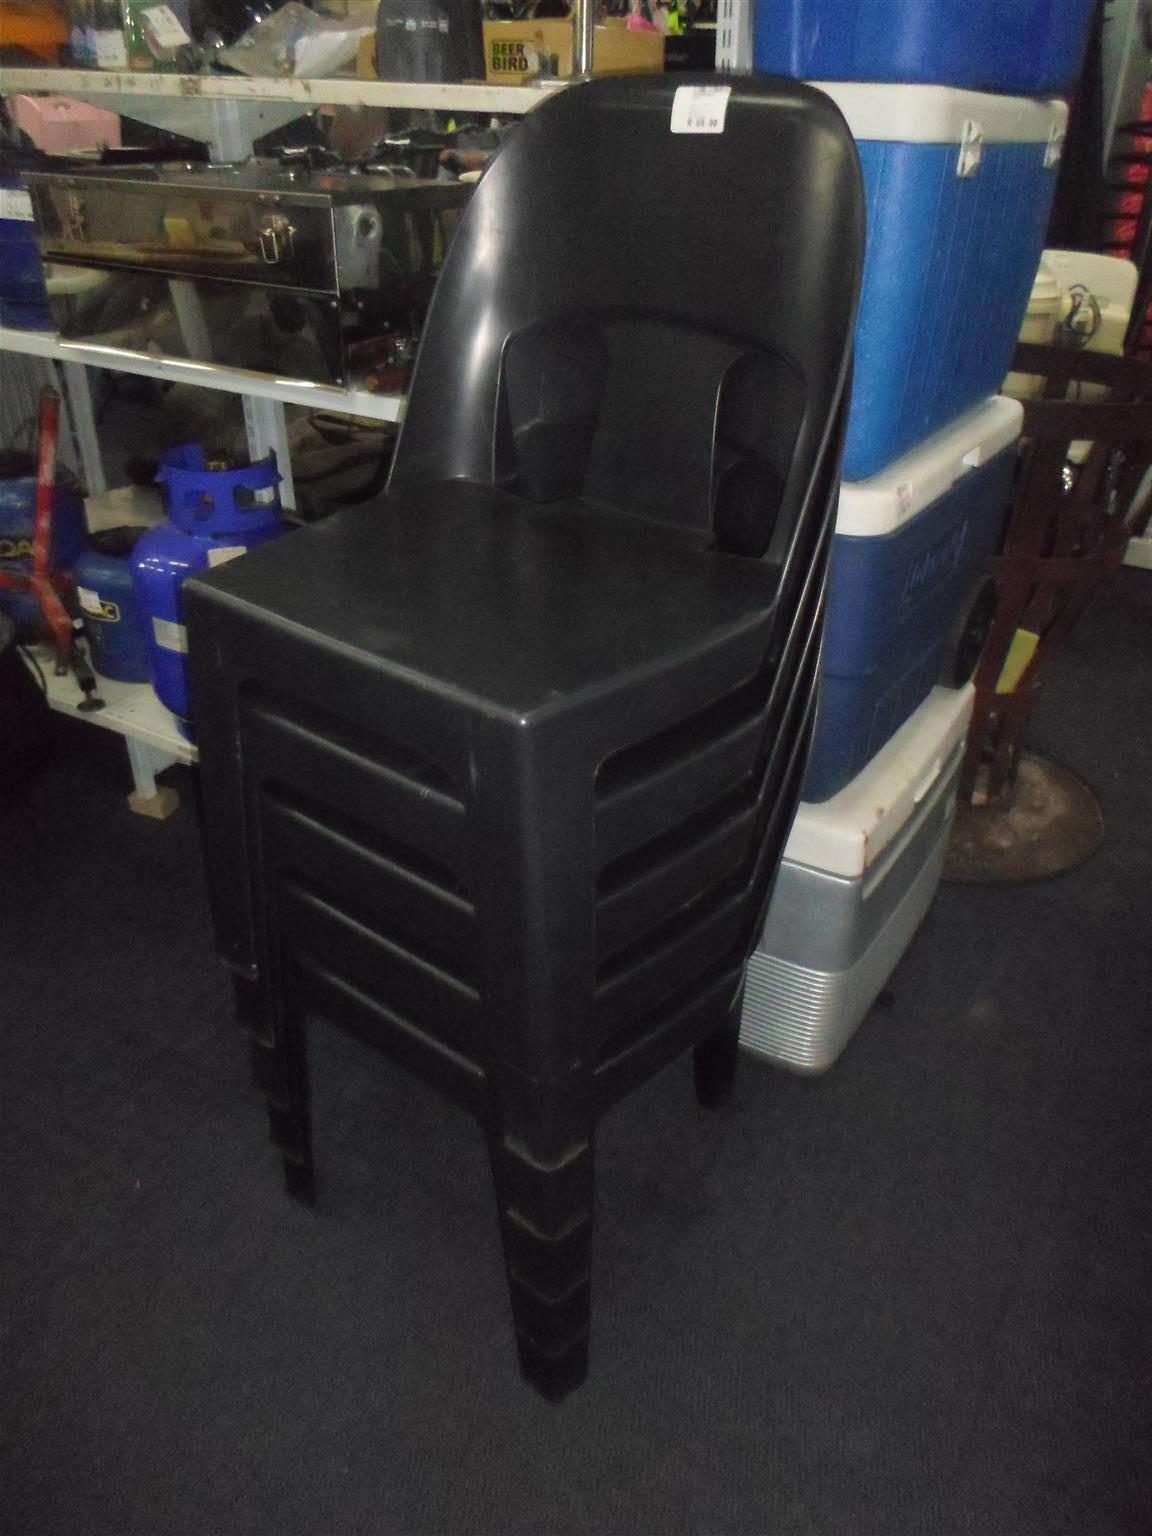 5x Plastic Chairs - C033046446-6